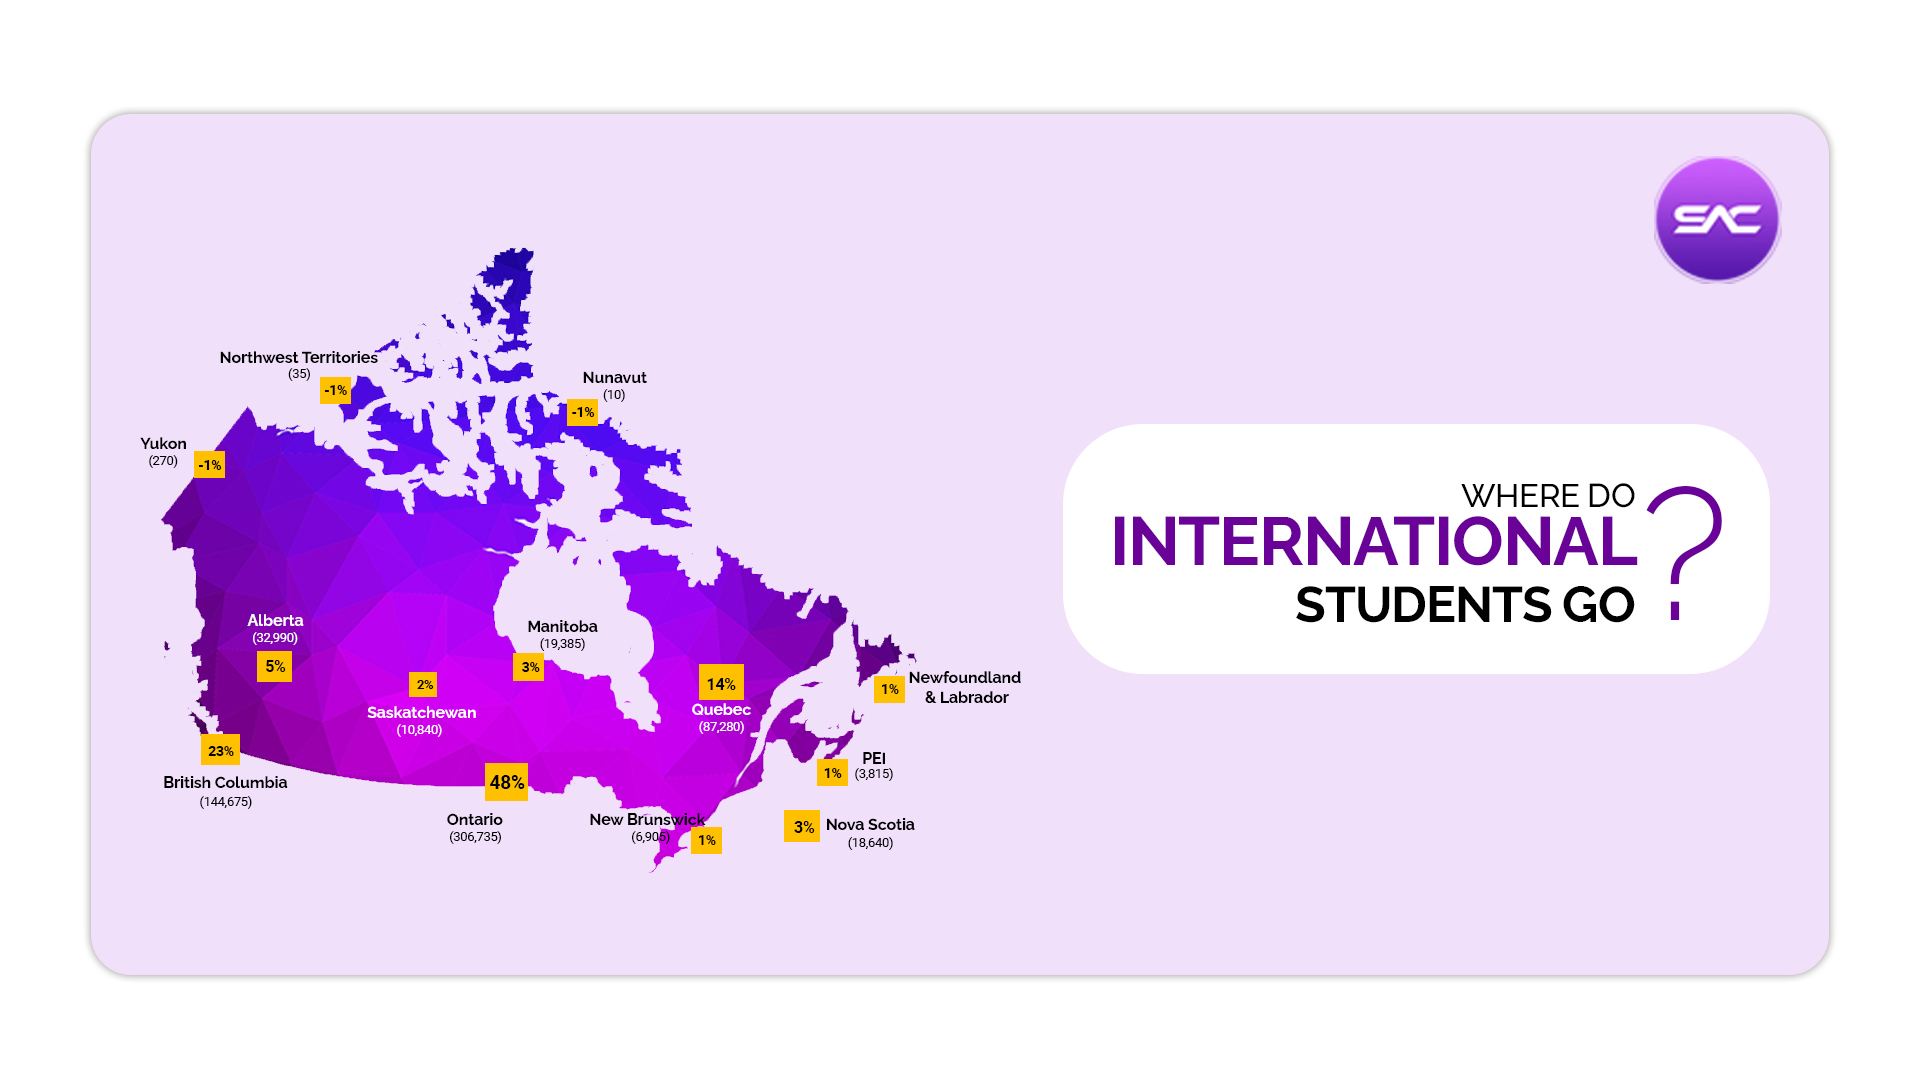 Depicting International Student Population in Various Canadian Provinces